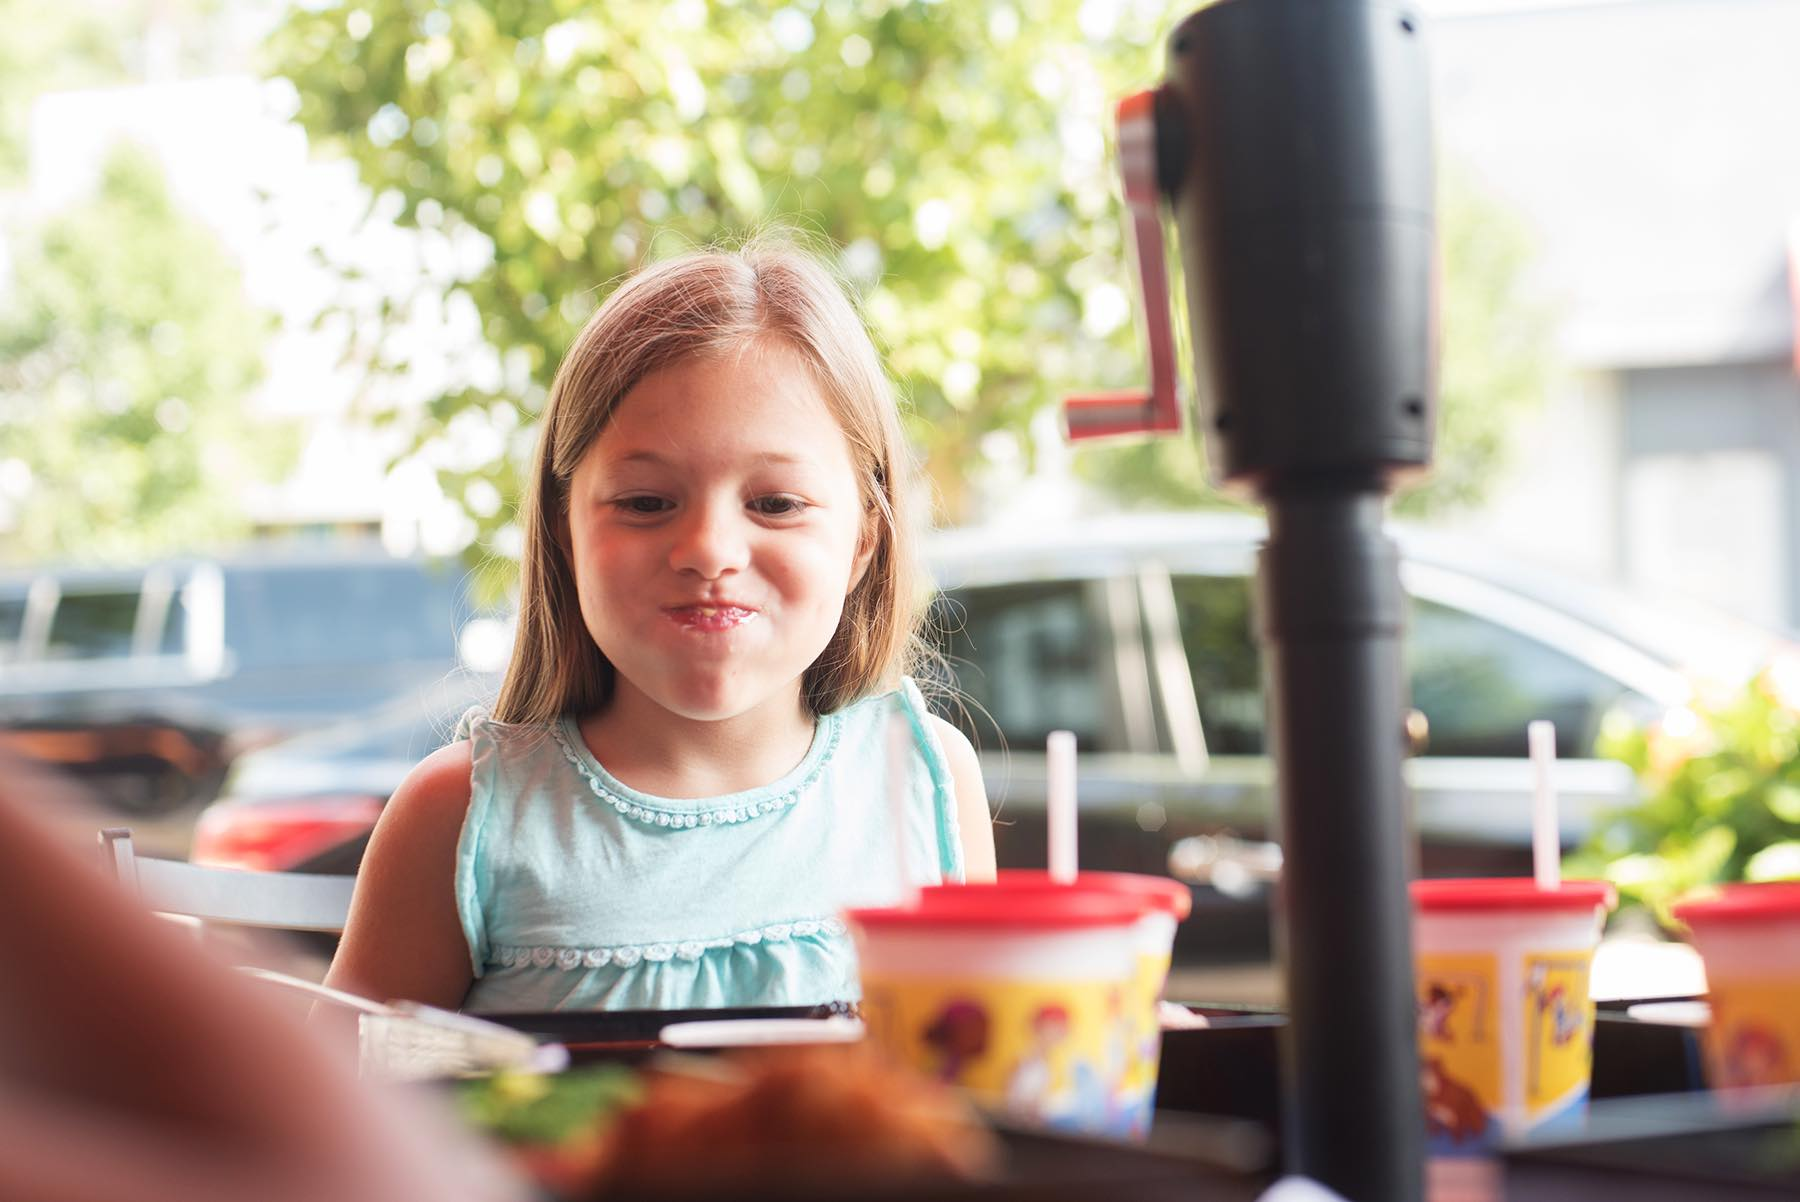 How To Eat Without Grossing Everyone Else - (cool) progeny